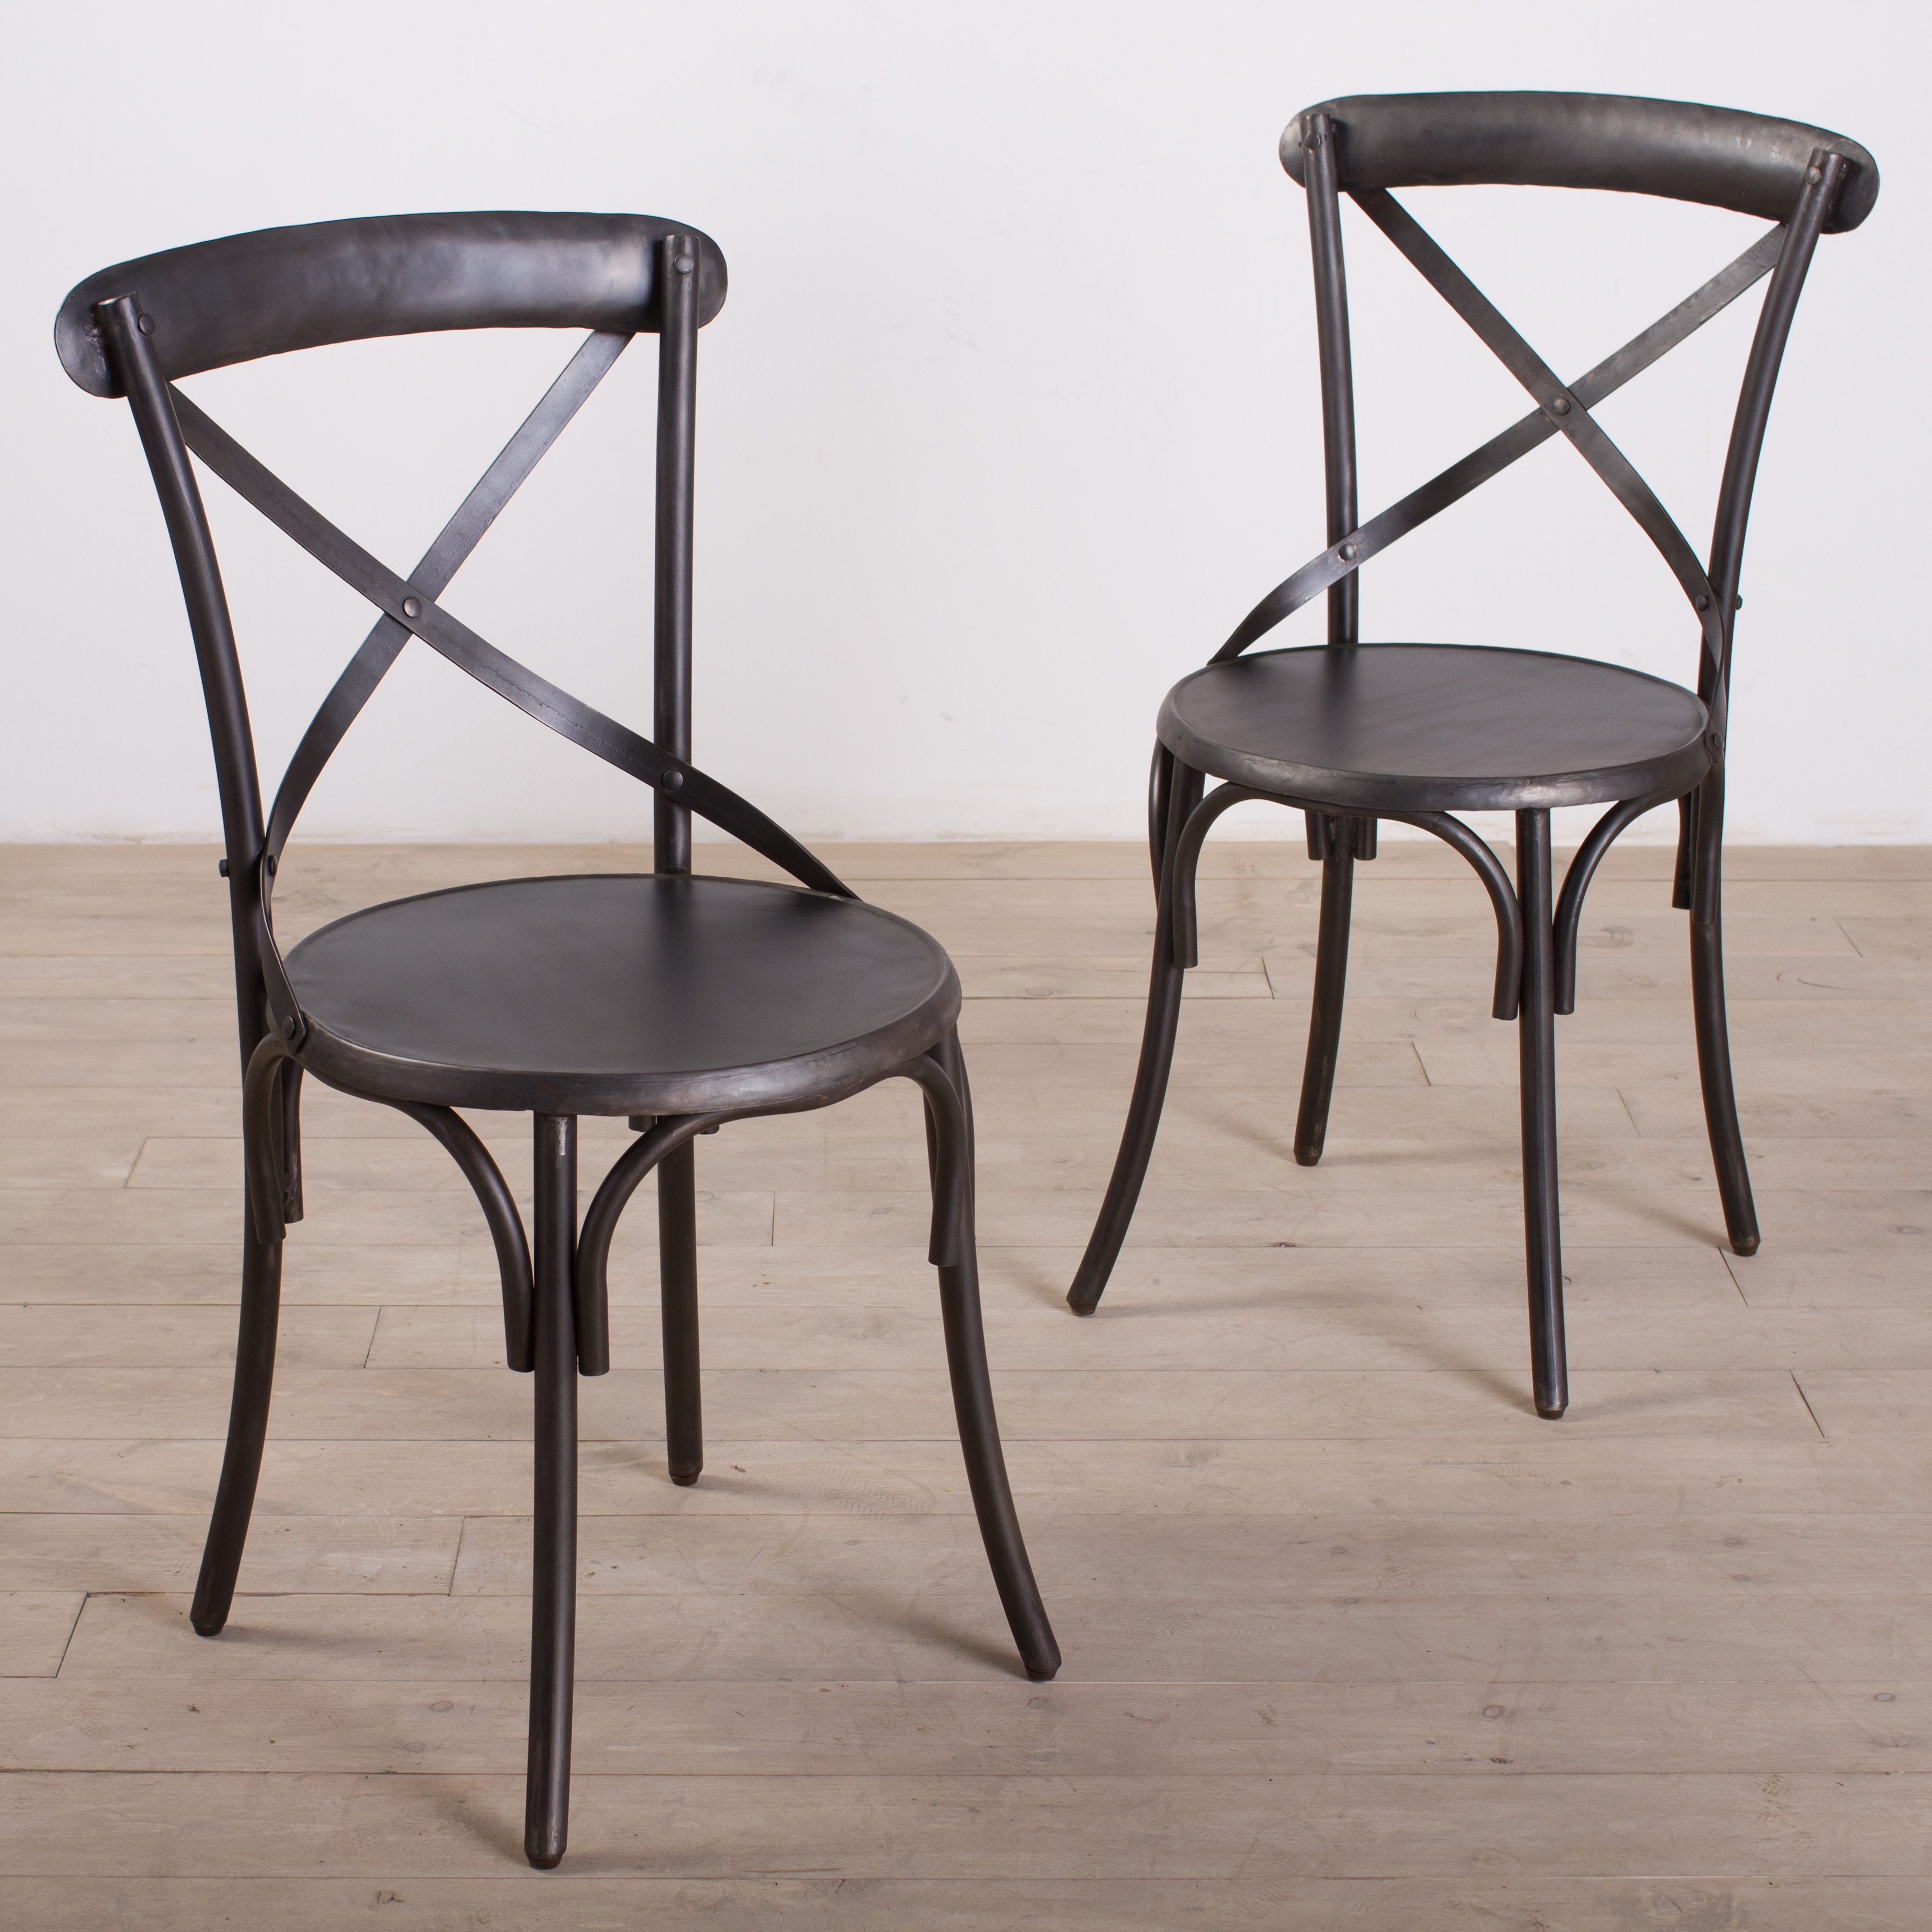 Metal bistro chairs zinc finish set of 2 furniture home